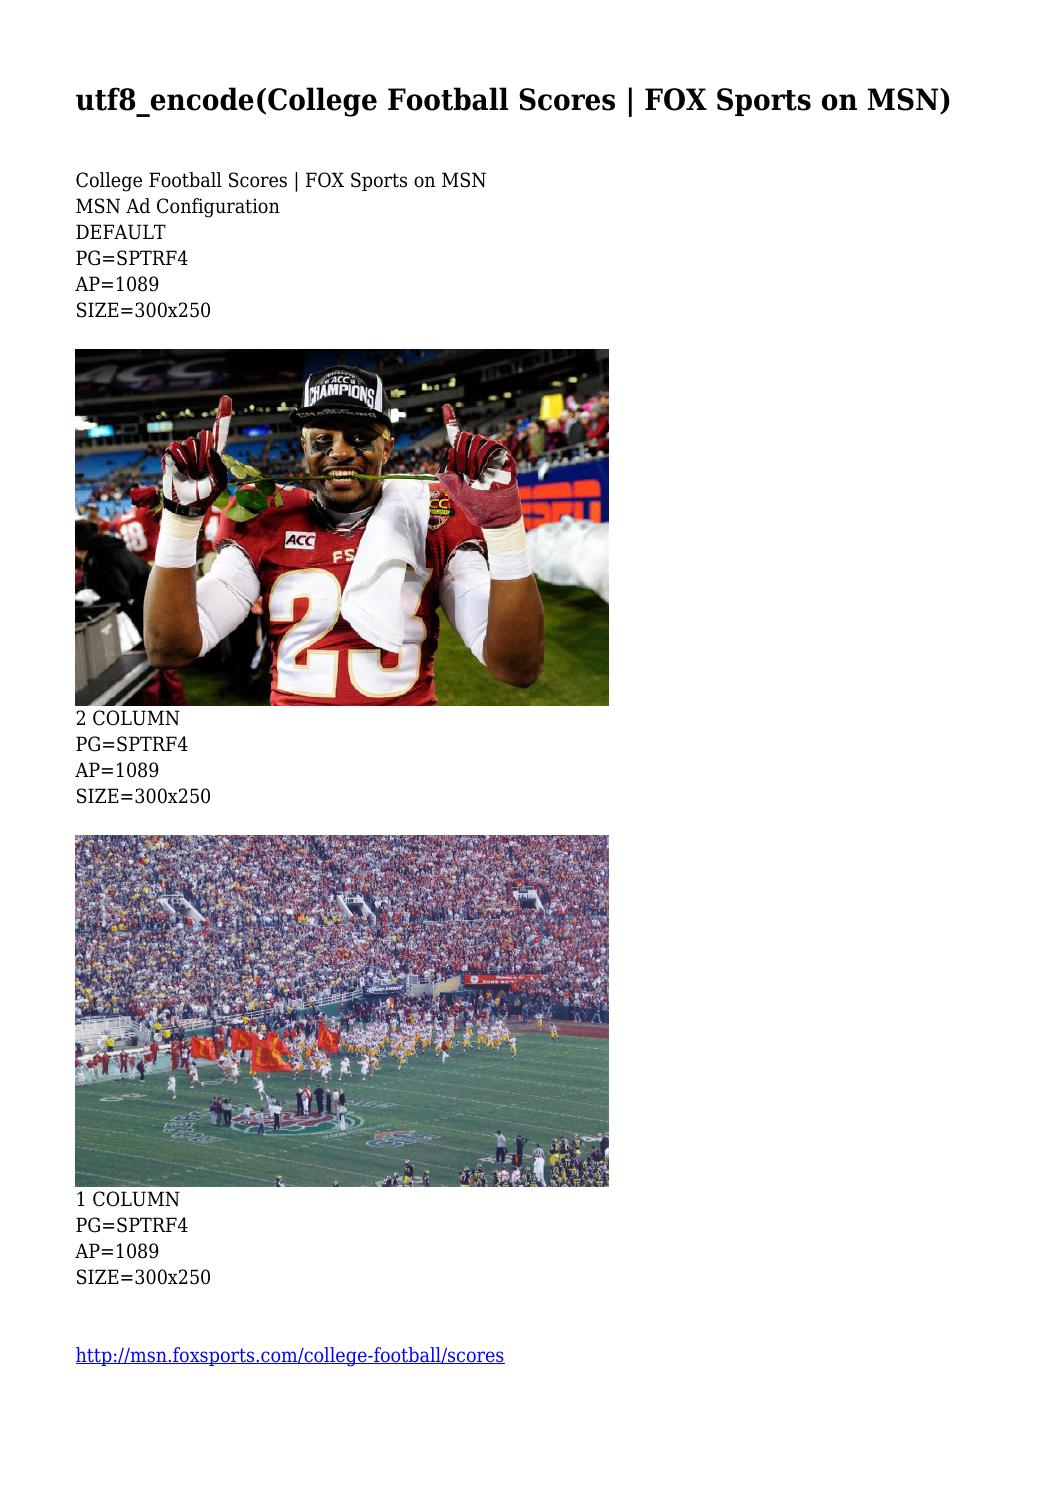 College Football Scores Fox Sports On Msn By Grandiosecongre14 Issuu